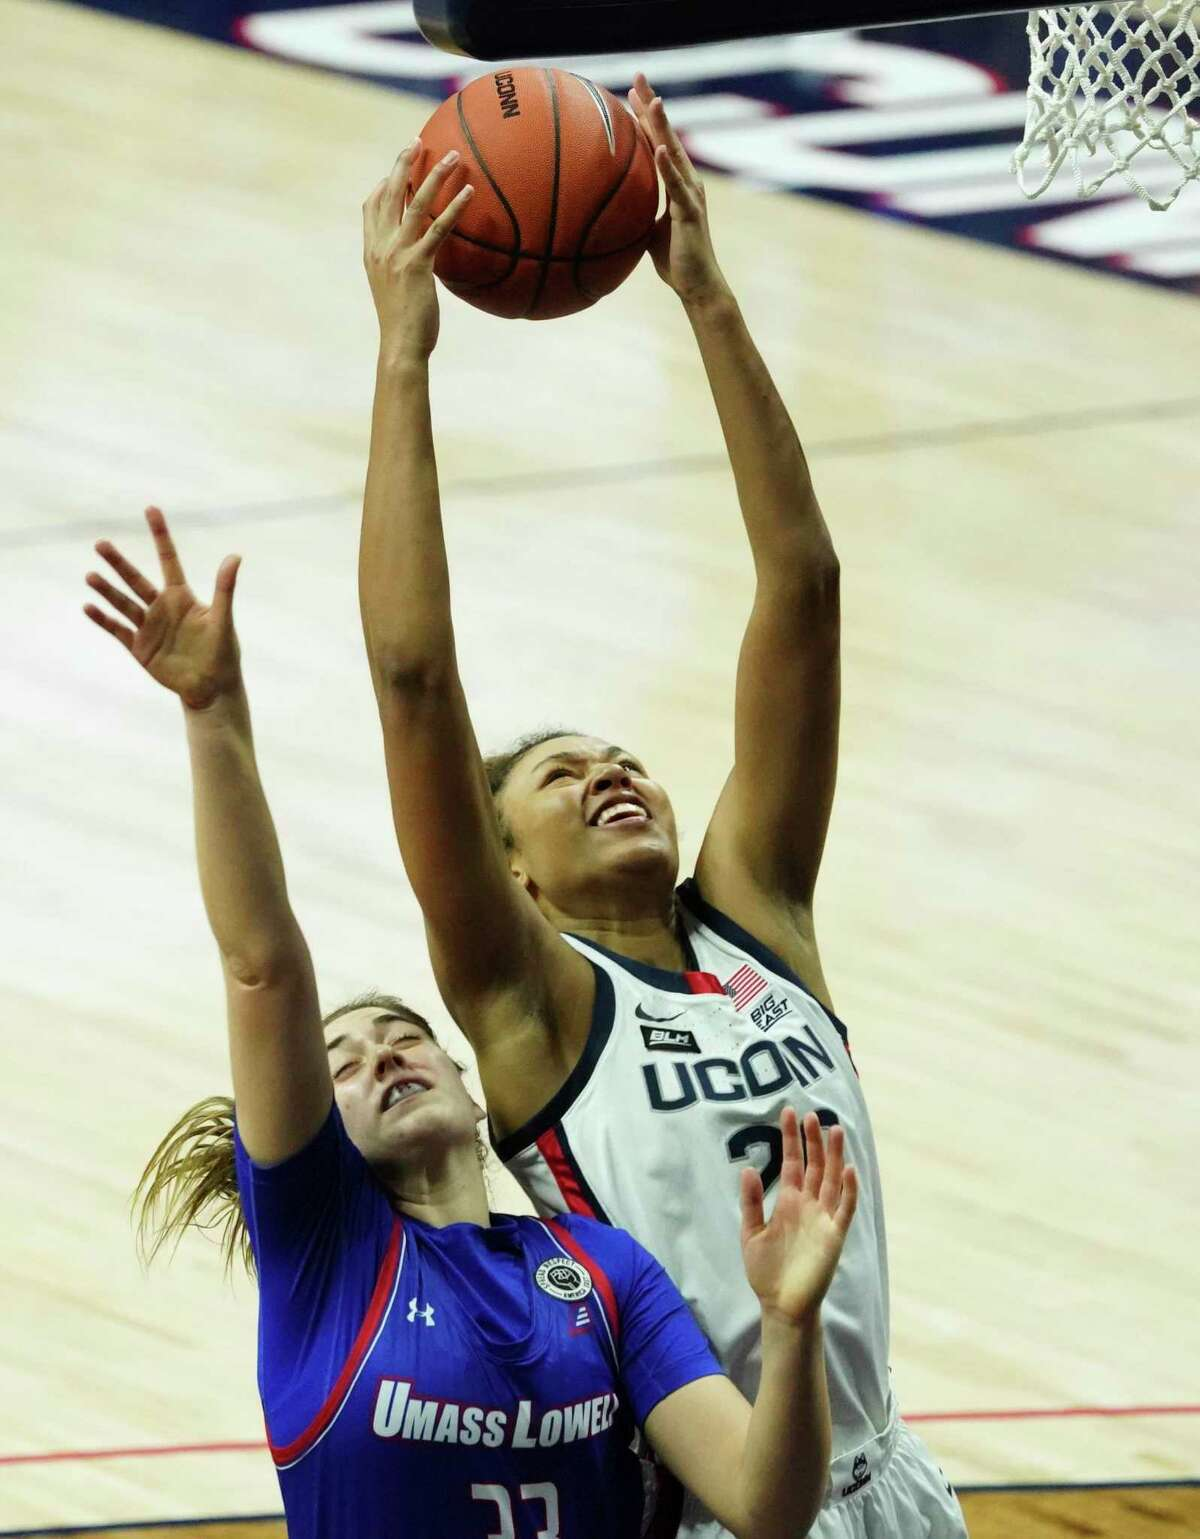 UConn forward Olivia Nelson-Ododa (20) grabs a rebound over UMass-Lowell forward Tiahna Sears (33) during second first half of an NCAA women's basketball game on Saturday in Storrs, Conn.